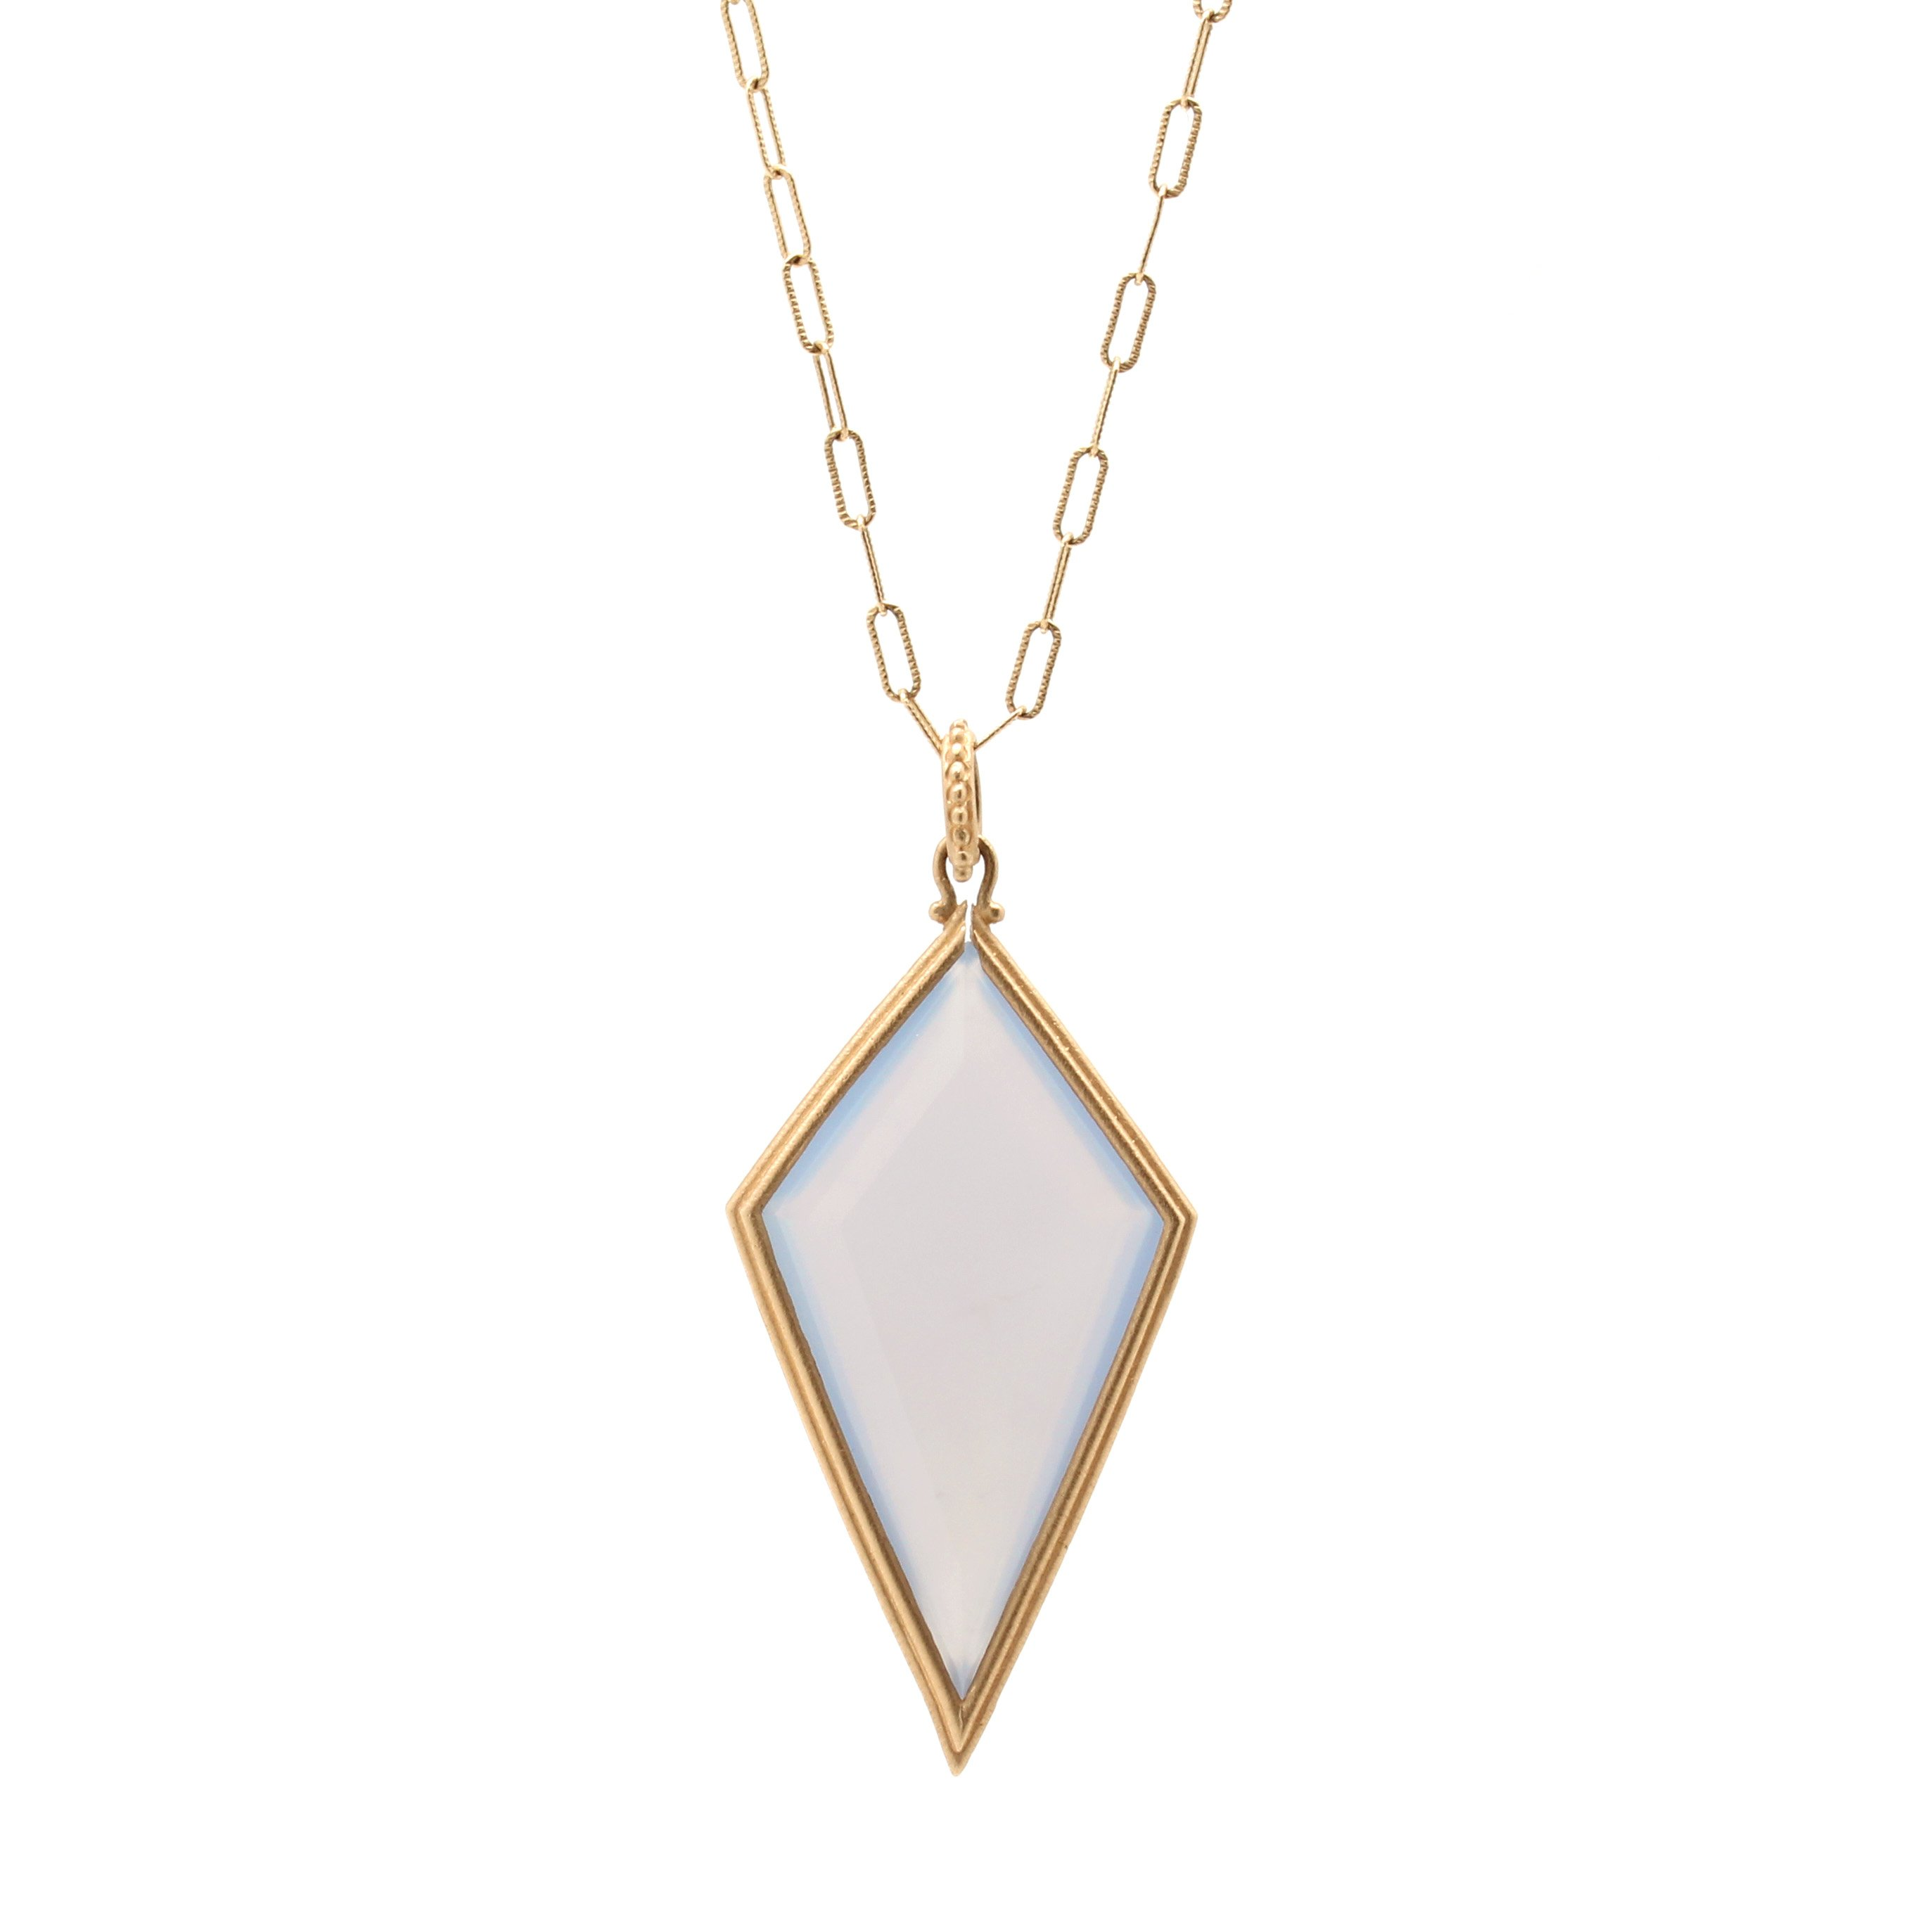 full solid item and click pendant chrome to massive expand chalcedony chain cable rh necklace